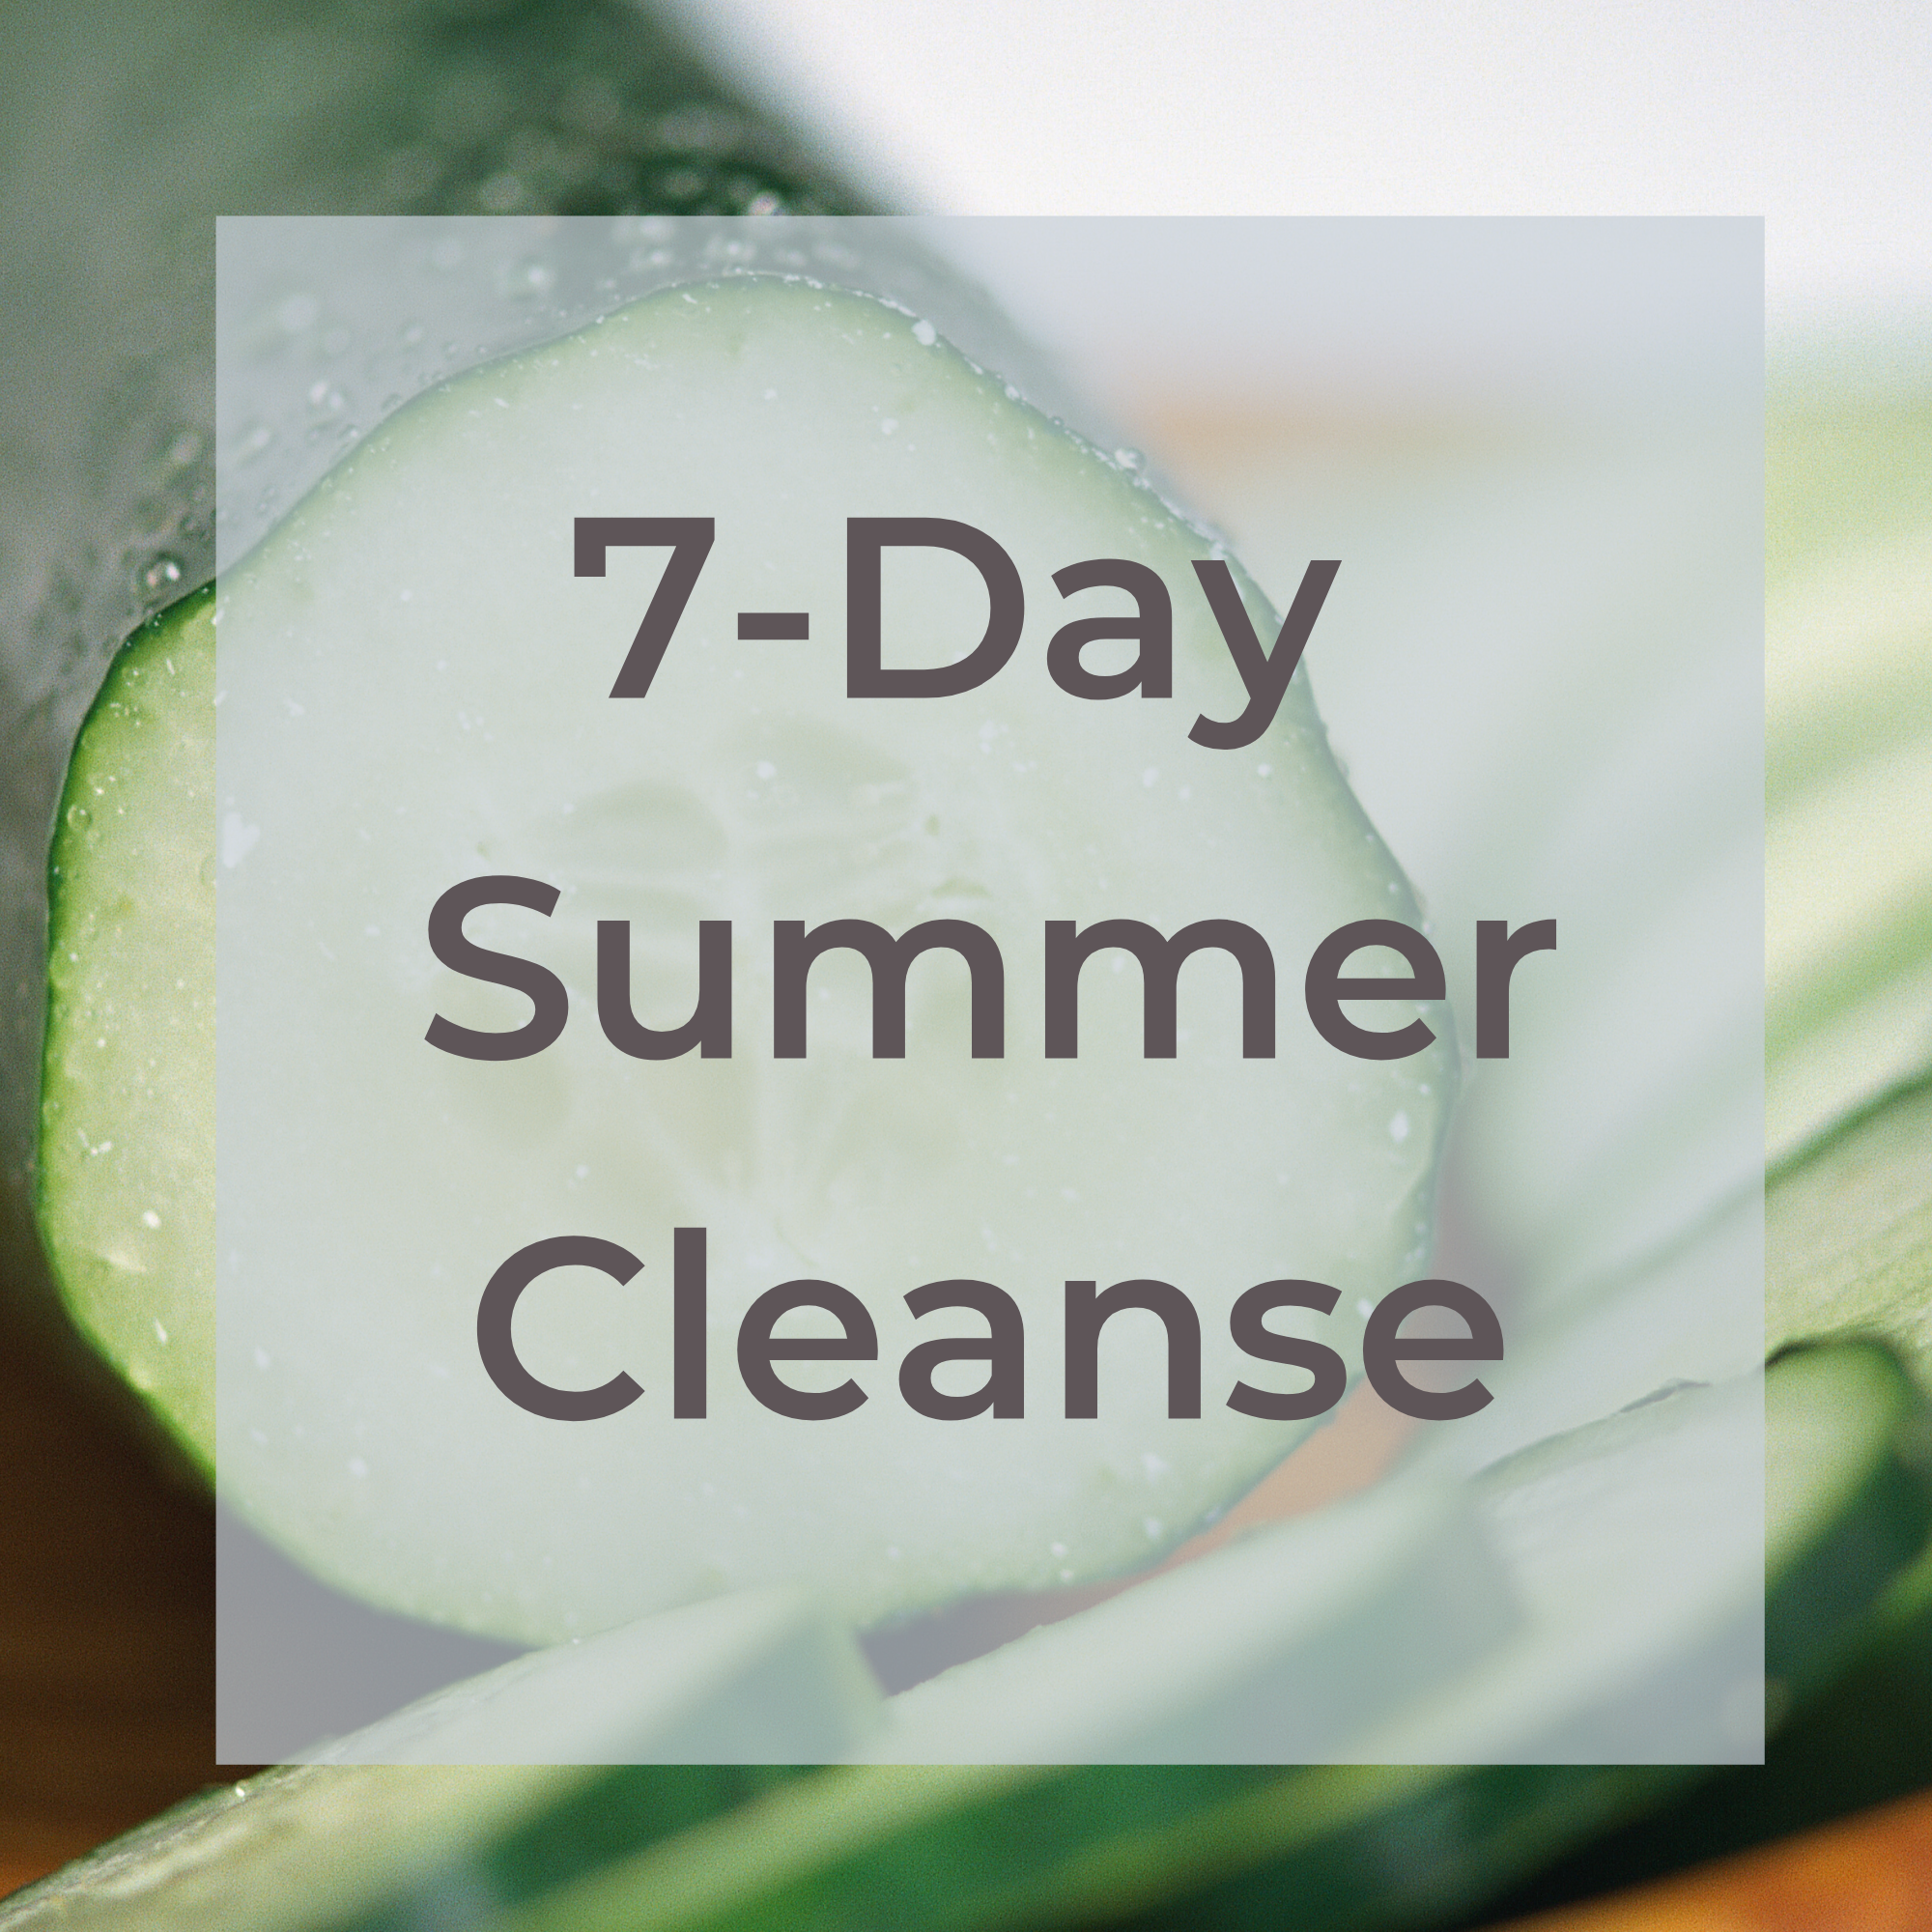 7- Day Summer Cleanse